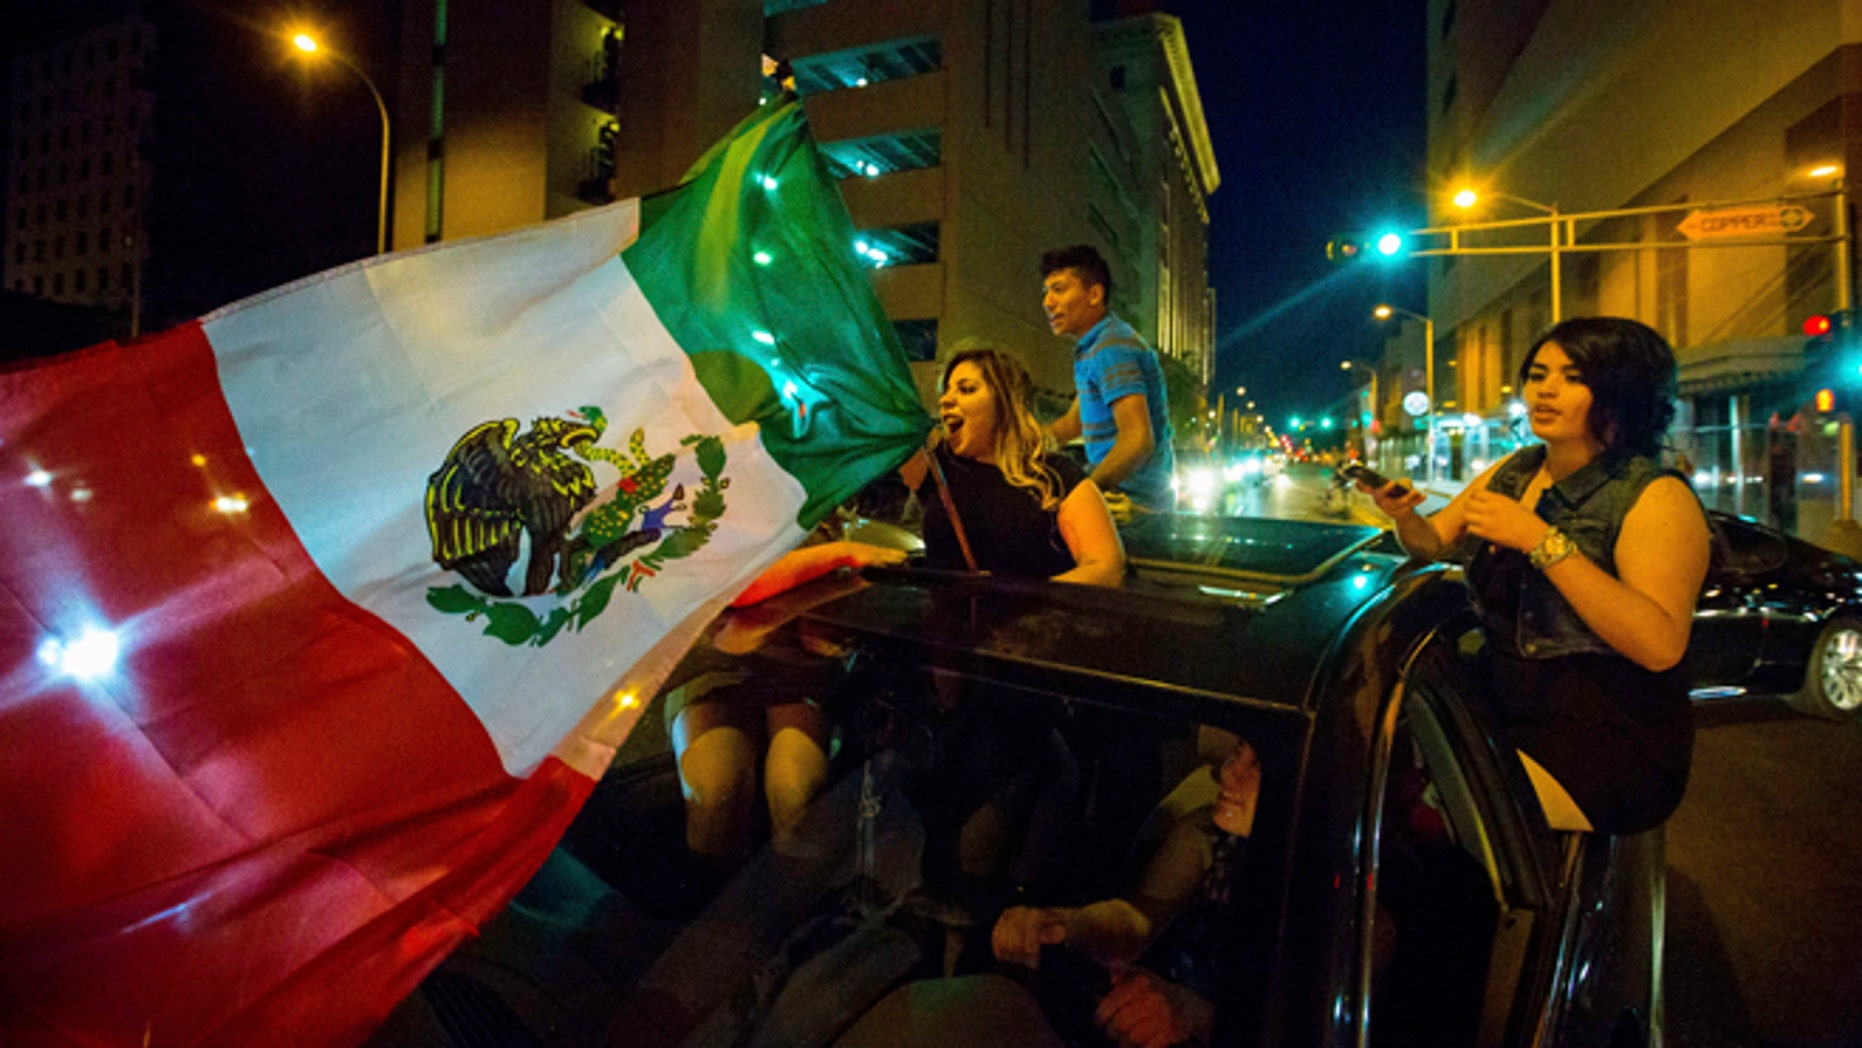 File - In this May 24, 2016, file photo, a woman waves the Mexican flag while driving past the Albuquerque Convention Center after a rally by Republican presidential candidate Donald Trump in Albuquerque, N.M. It's a flag seen at many protests against presumptive Republican presidential nominee Donald Trump. It also can be spotted at immigration rallies, on murals in cities with sizeable Latino populations and at Mexican National team soccer games held on U.S. soil. The flag of Mexico has a long history in the United States, despite being a symbol of a nation south of the border. (Jett Loe/The Las Cruces Sun-News via AP, File) MANDATORY